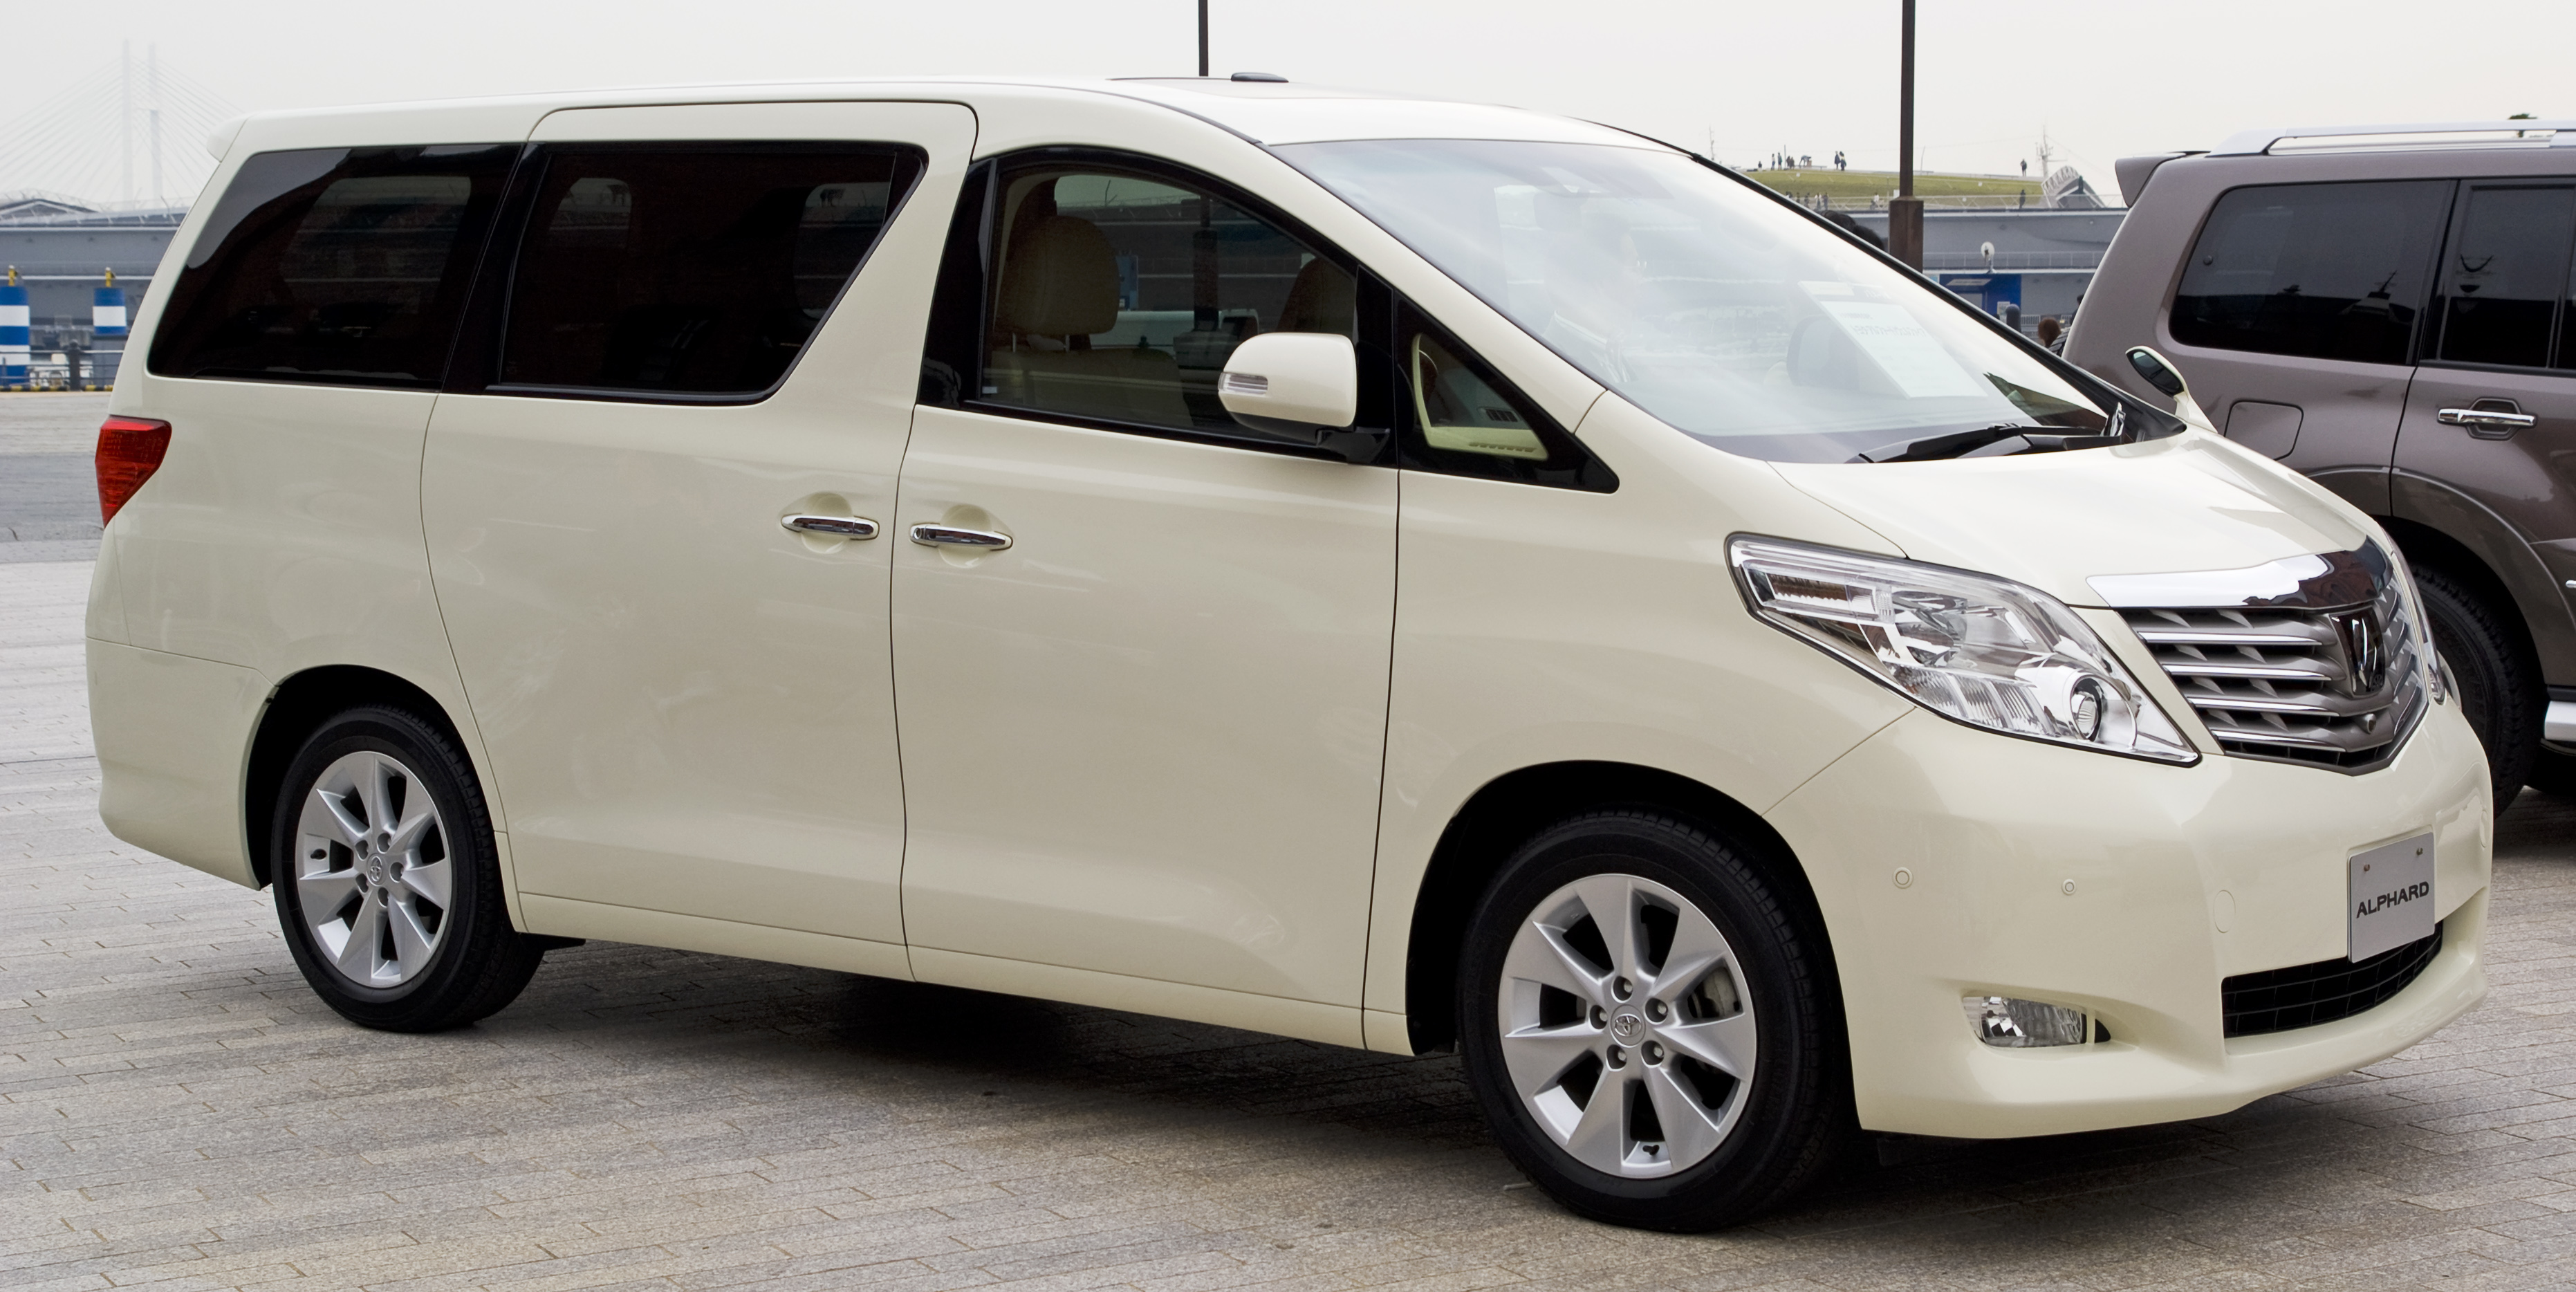 Toyota Alphard   pictures, information and specs - Auto-Database.com